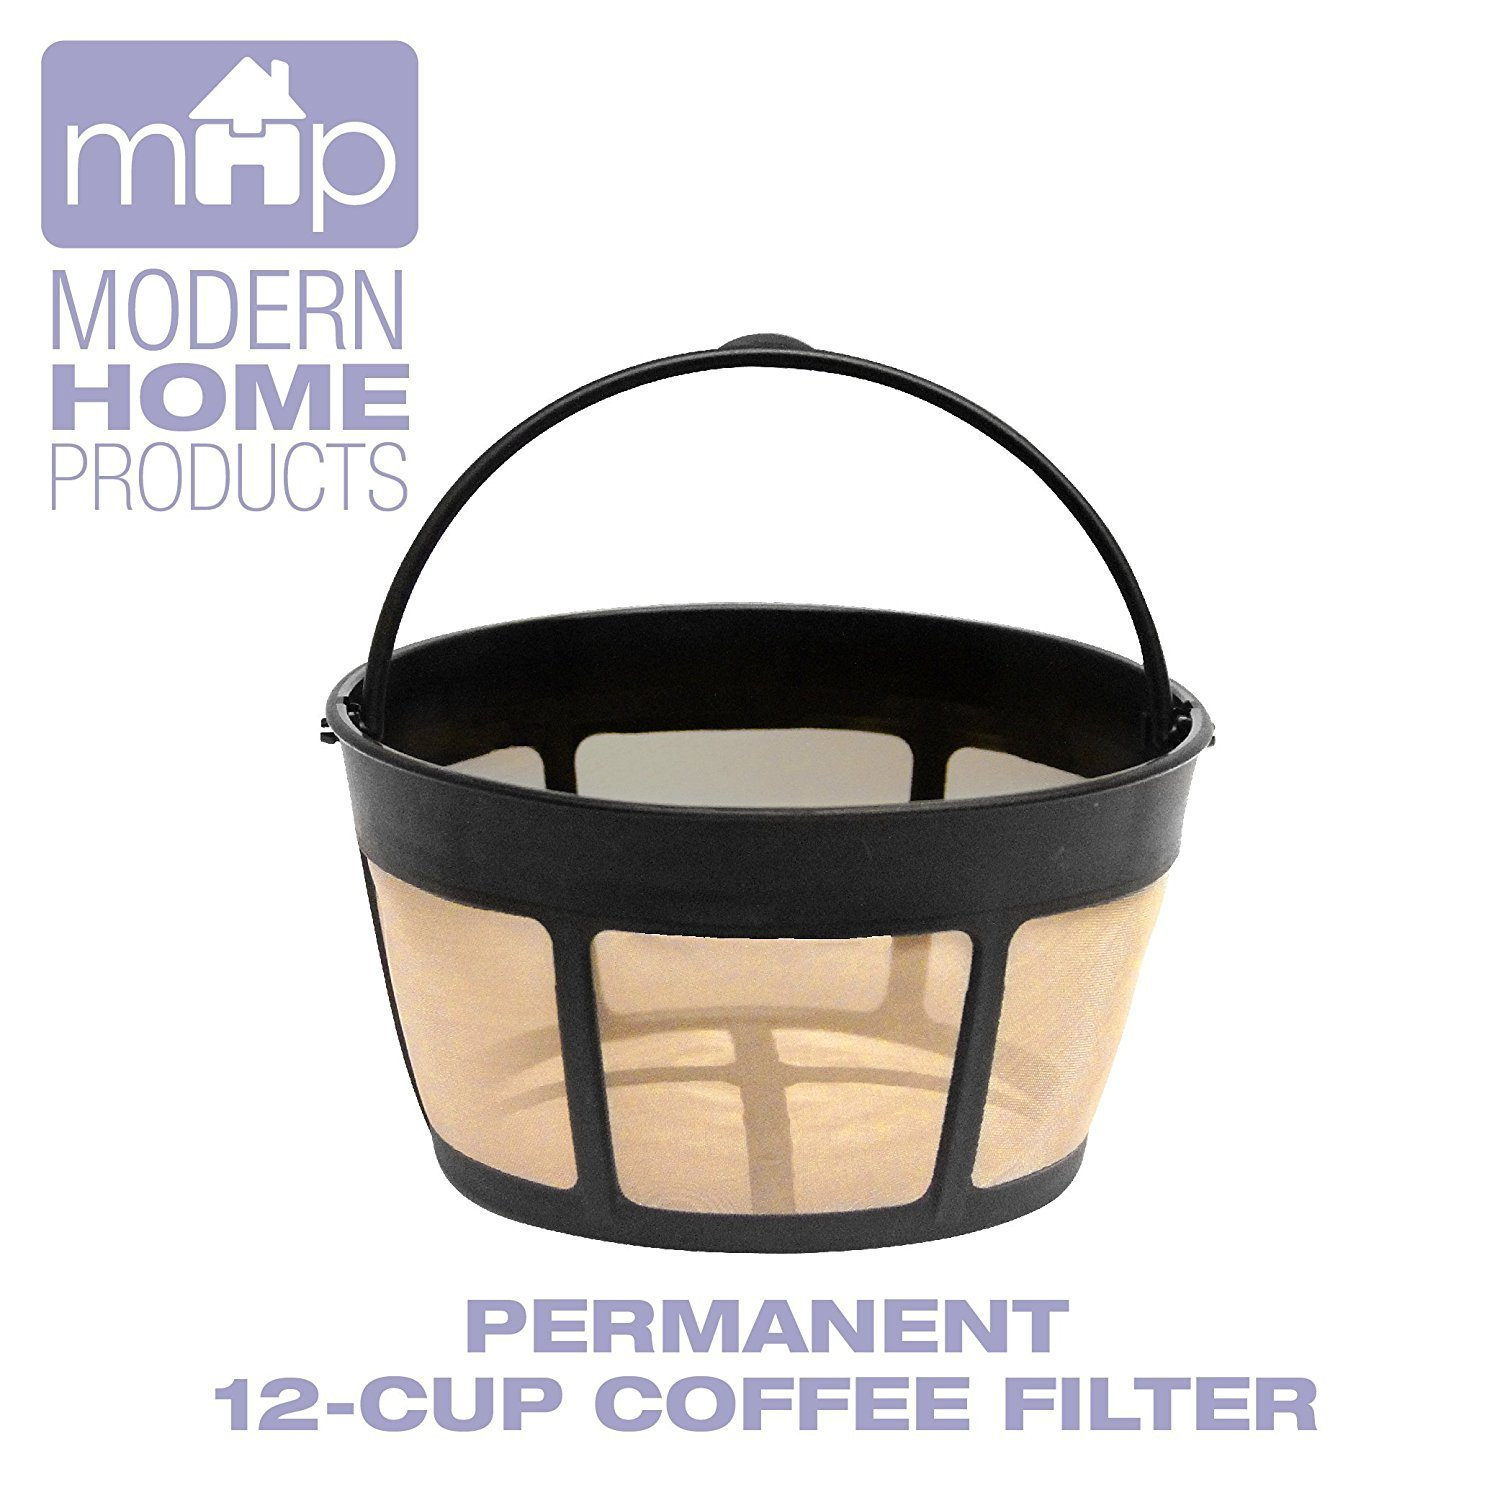 Permanent 12-Cup Basket Shape Gold Tone Coffee Filter Fits All Coffee Makers Using 8-12 Cup Basket Filters